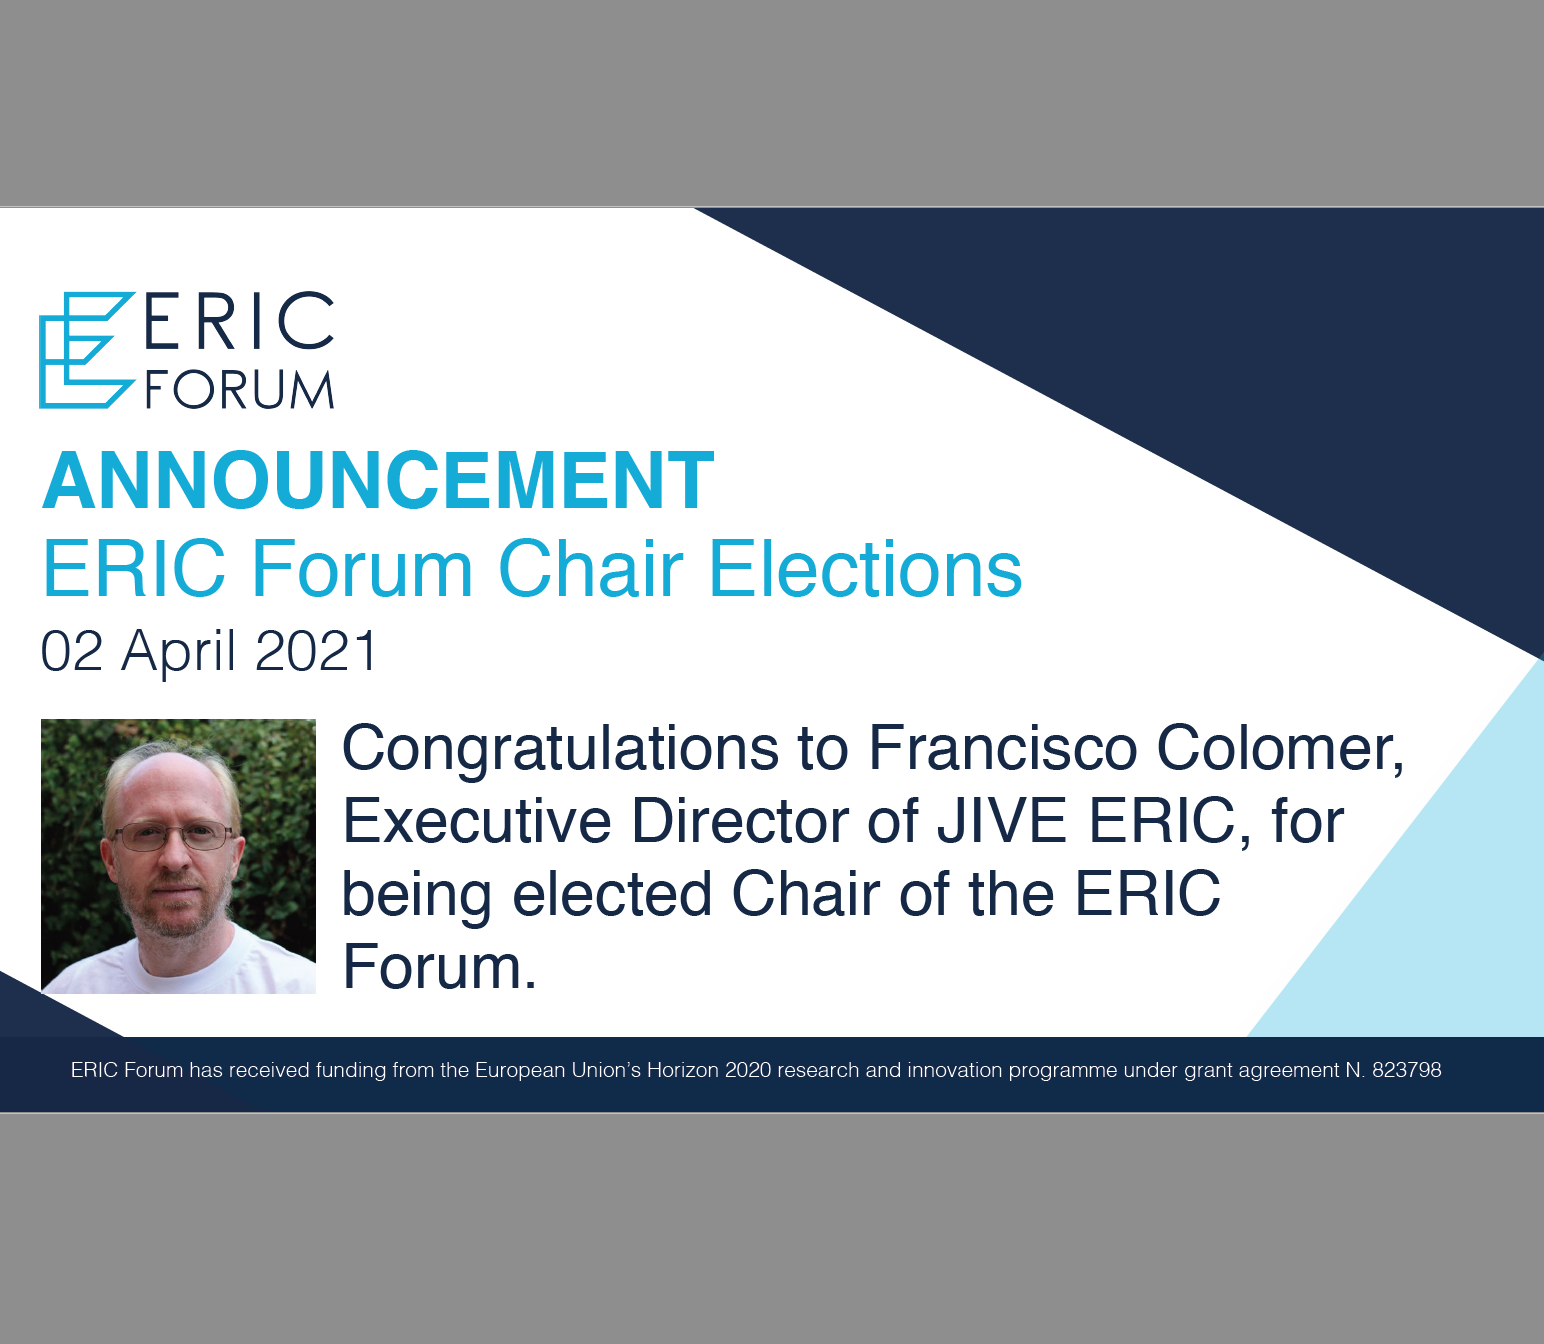 ERIC Forum elects Francisco Colomer, JIVE ERIC Director, as new Chair